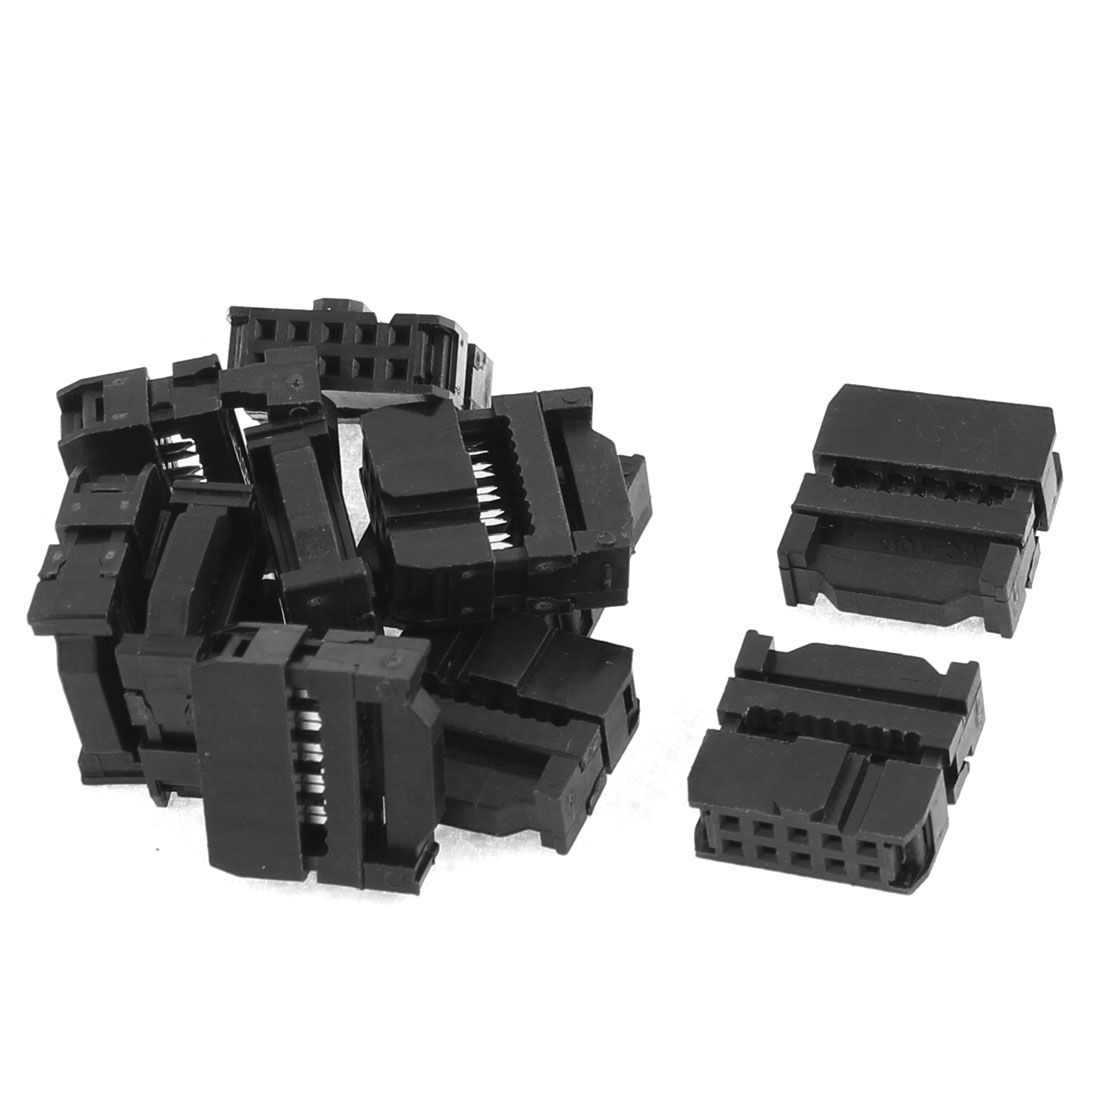 11Pcs 2.54mm Pitch 10 Pin IDC FC Header Socket Connector